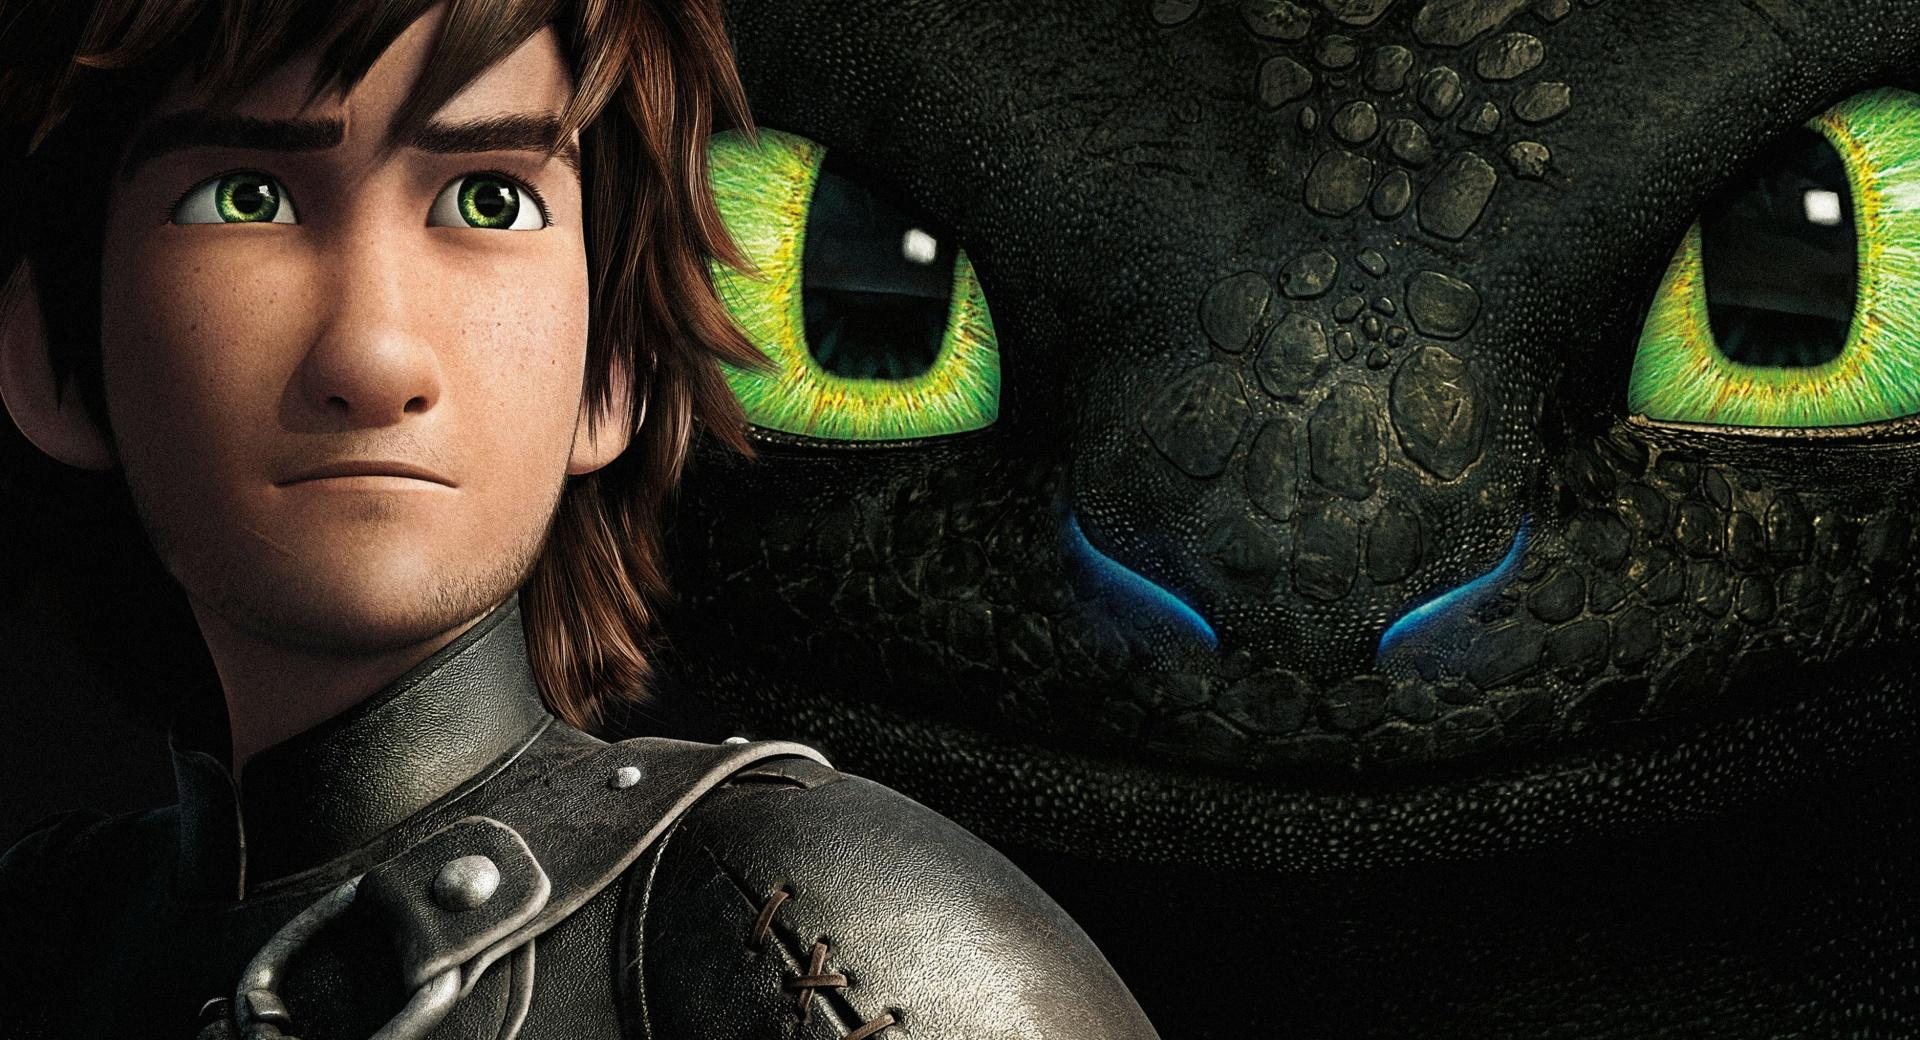 How To Train Your Dragon 2 Hiccup wallpapers HD quality